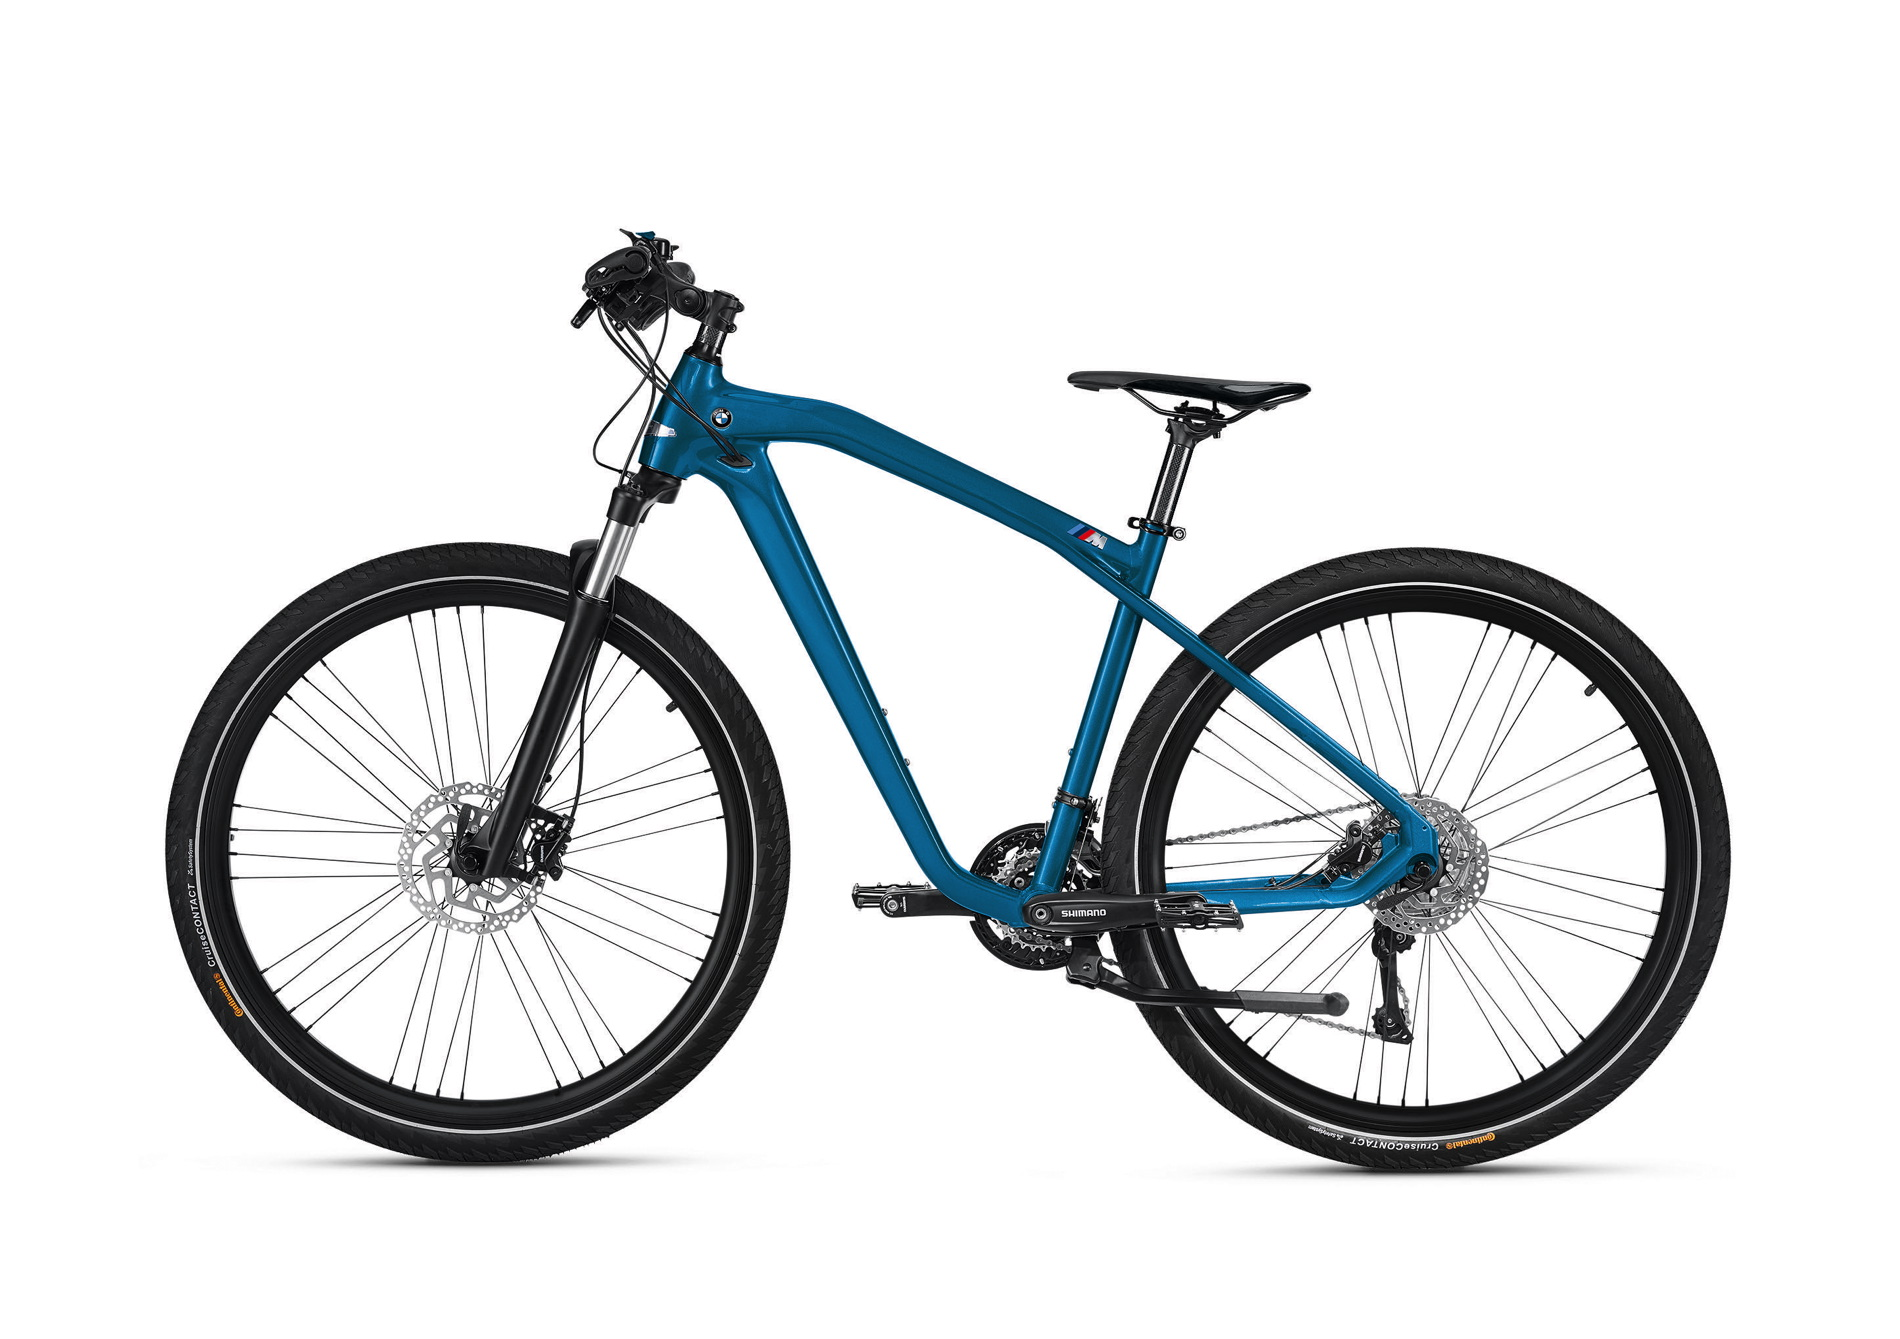 The BMW Cruise M limited edition bicycle is inspired by